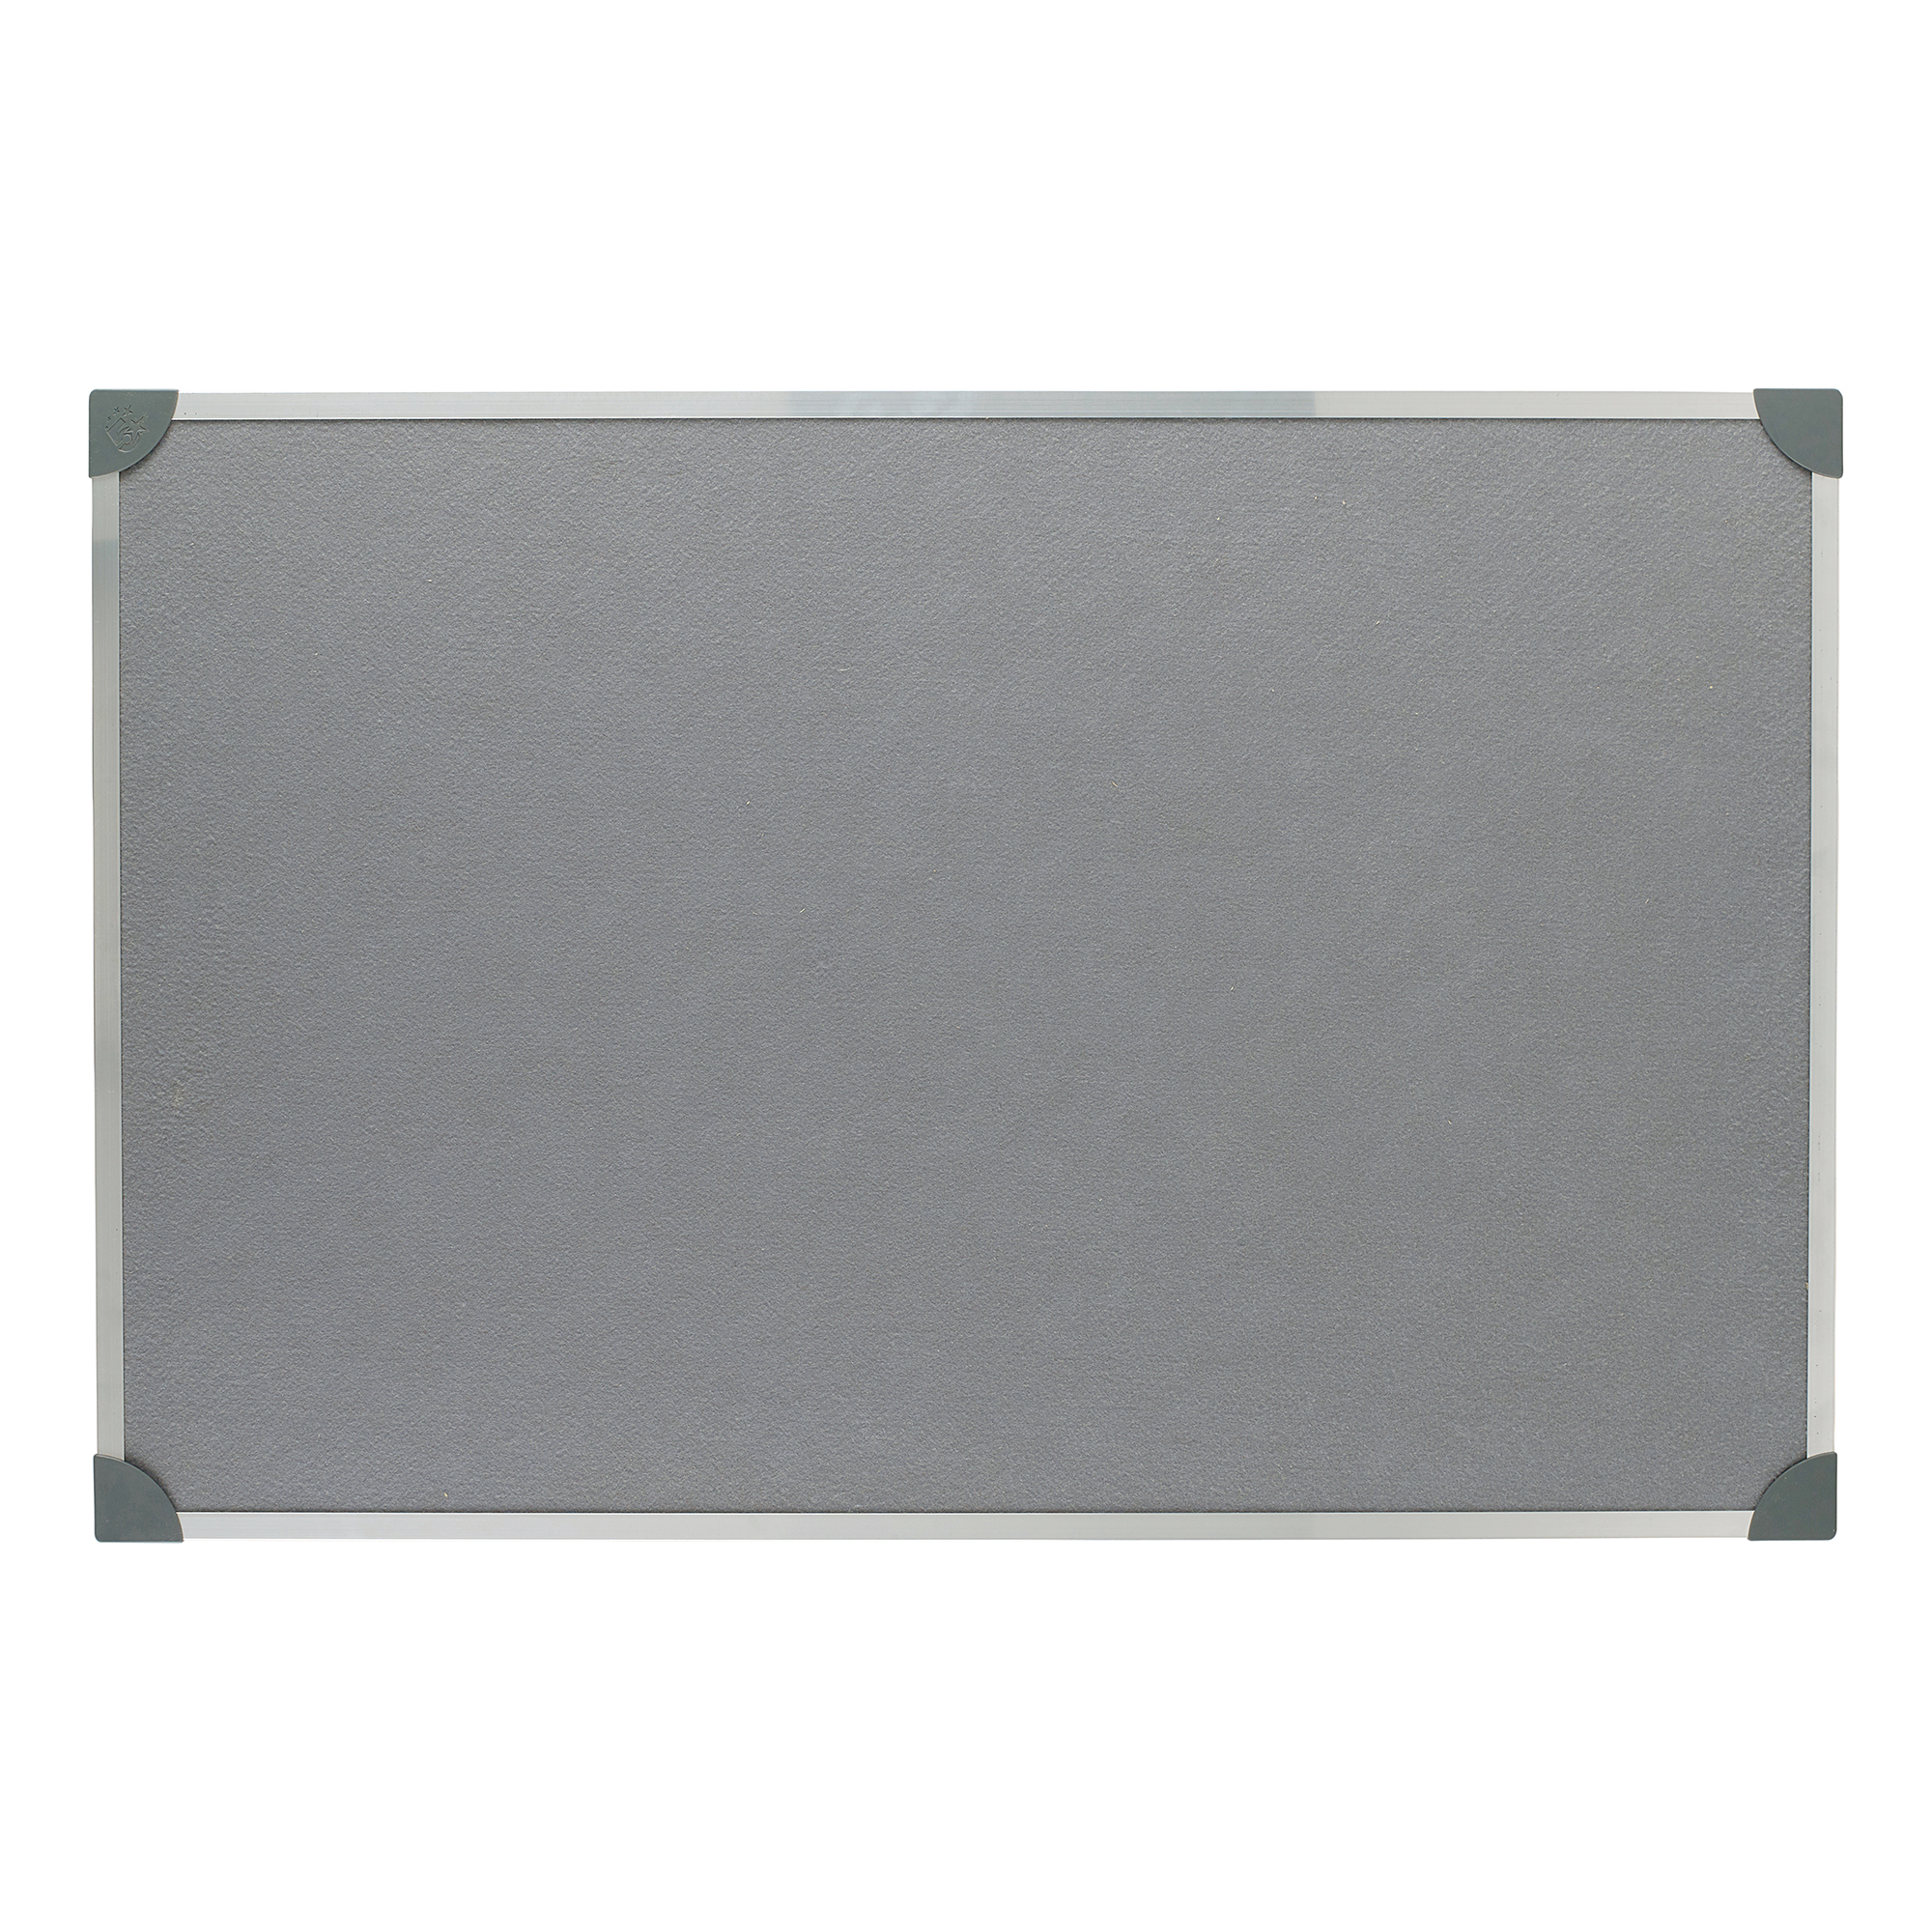 Felt 5 Star Office Felt Noticeboard with Fixings and Aluminium Trim W900xH600mm Grey